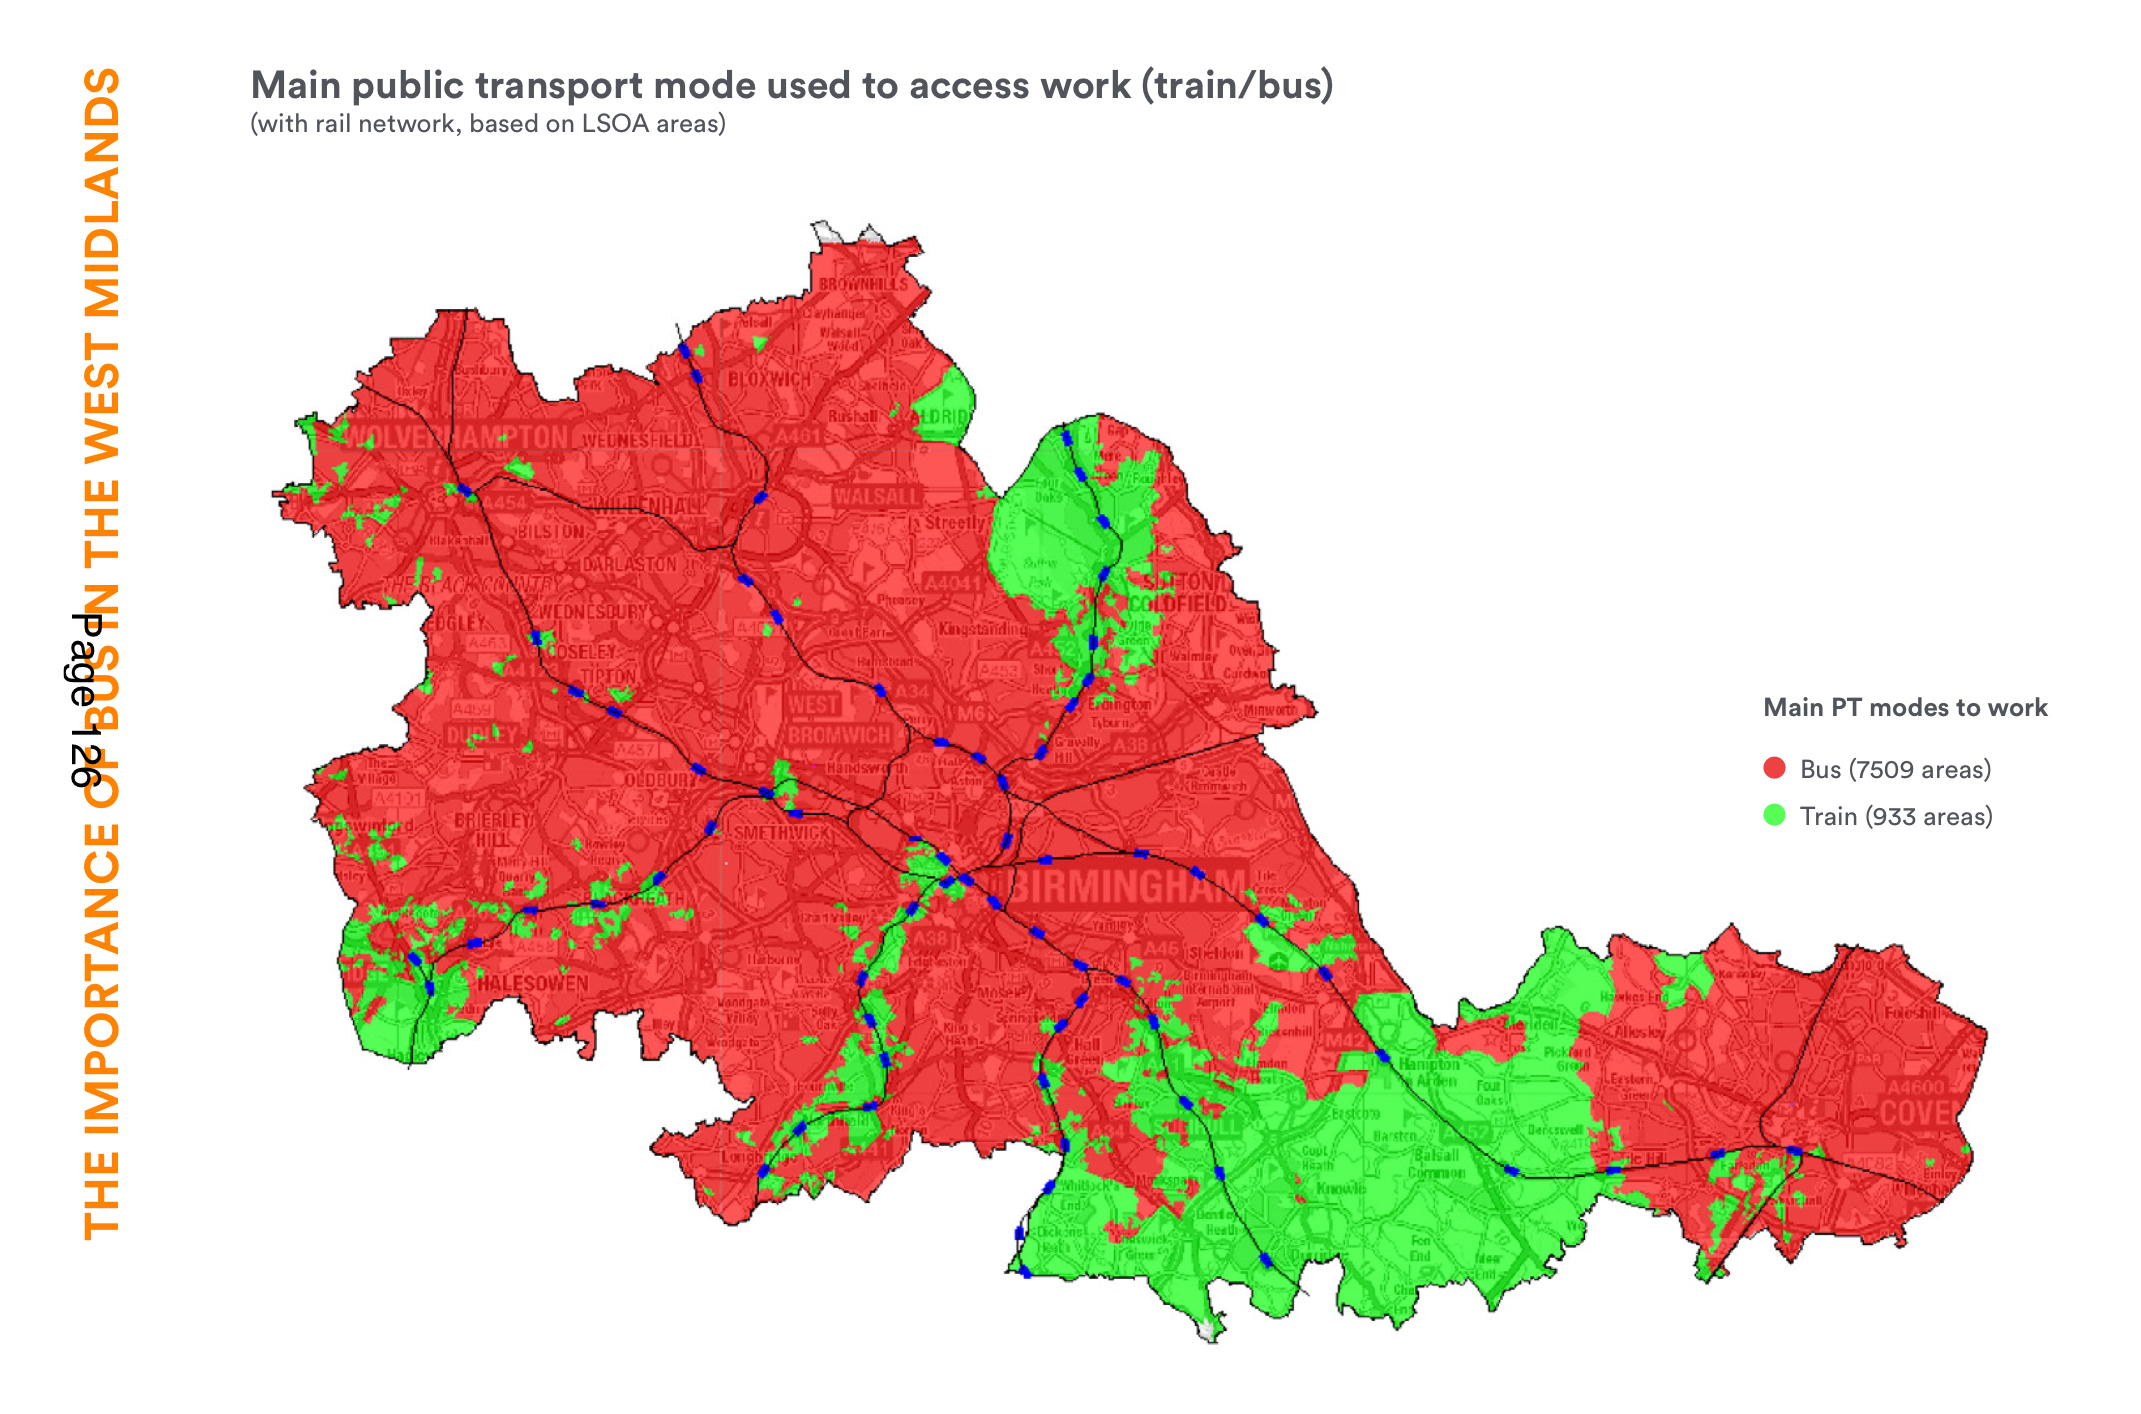 Main public transport mode used to access work